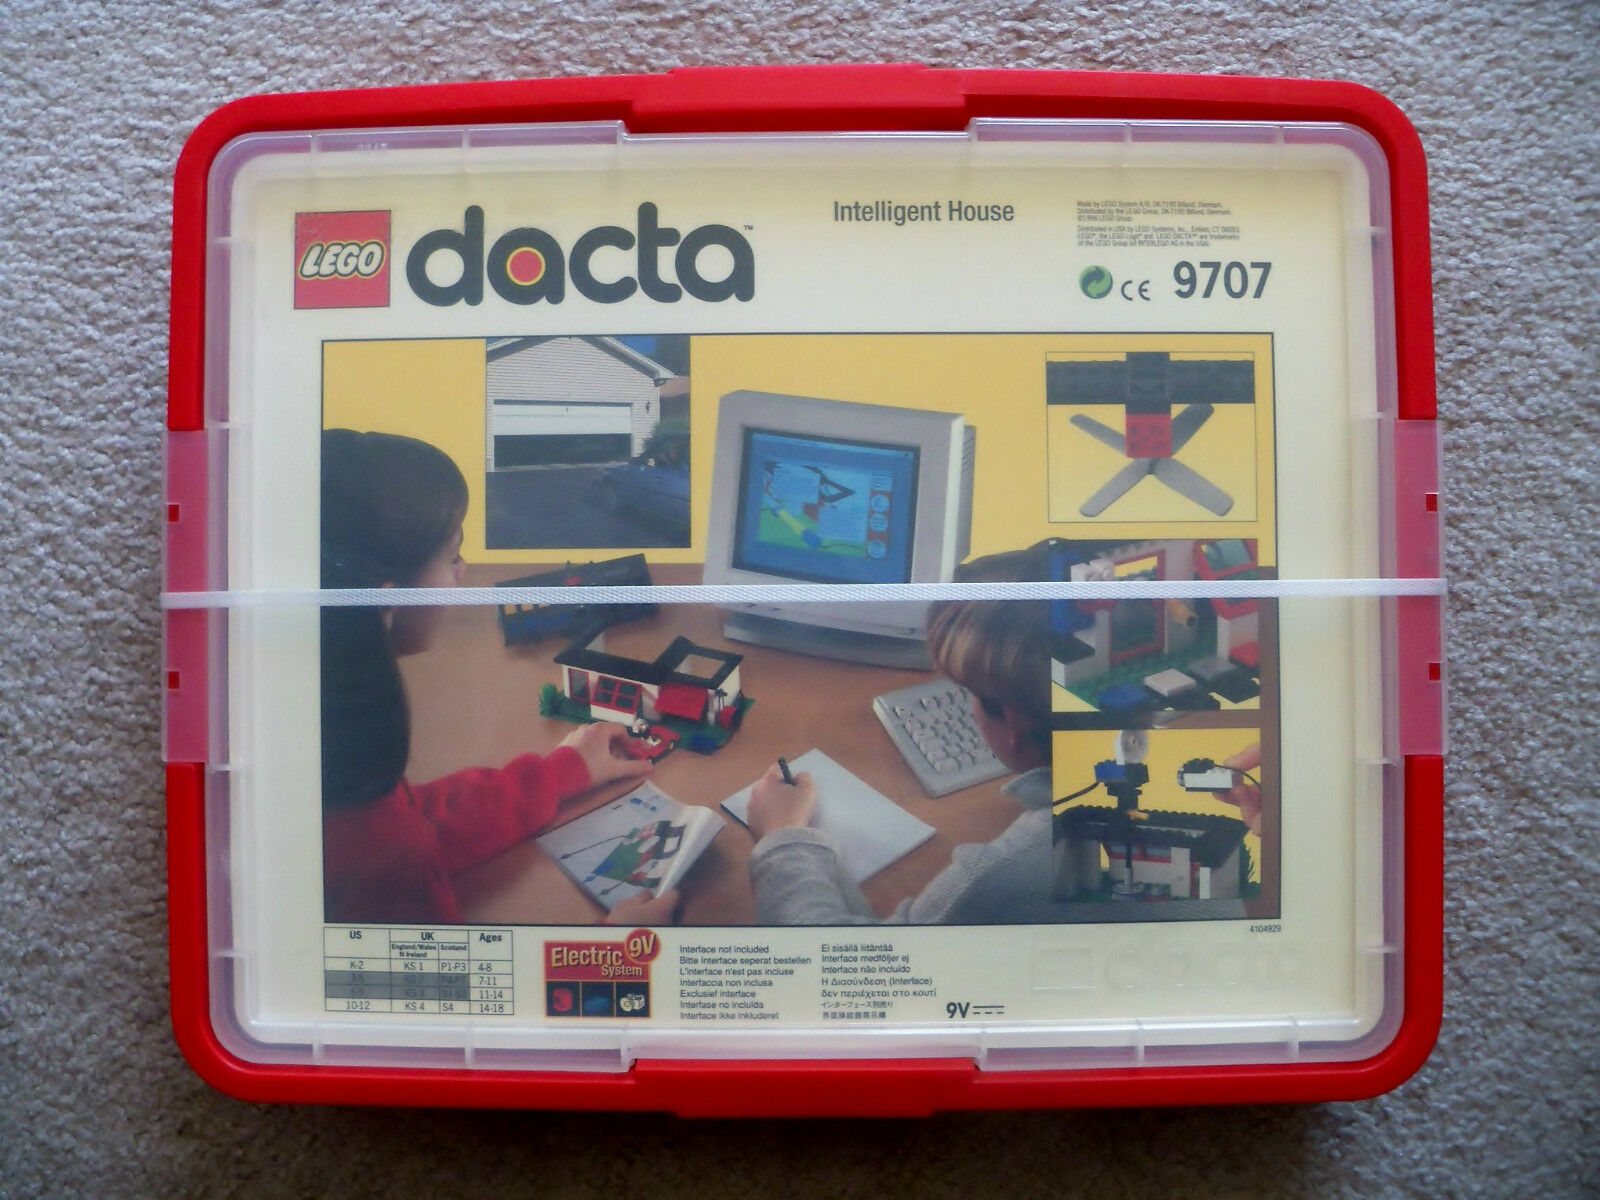 LEGO Educational & Dacta - Rare 9707 Intelligent House Building Set Control Lab